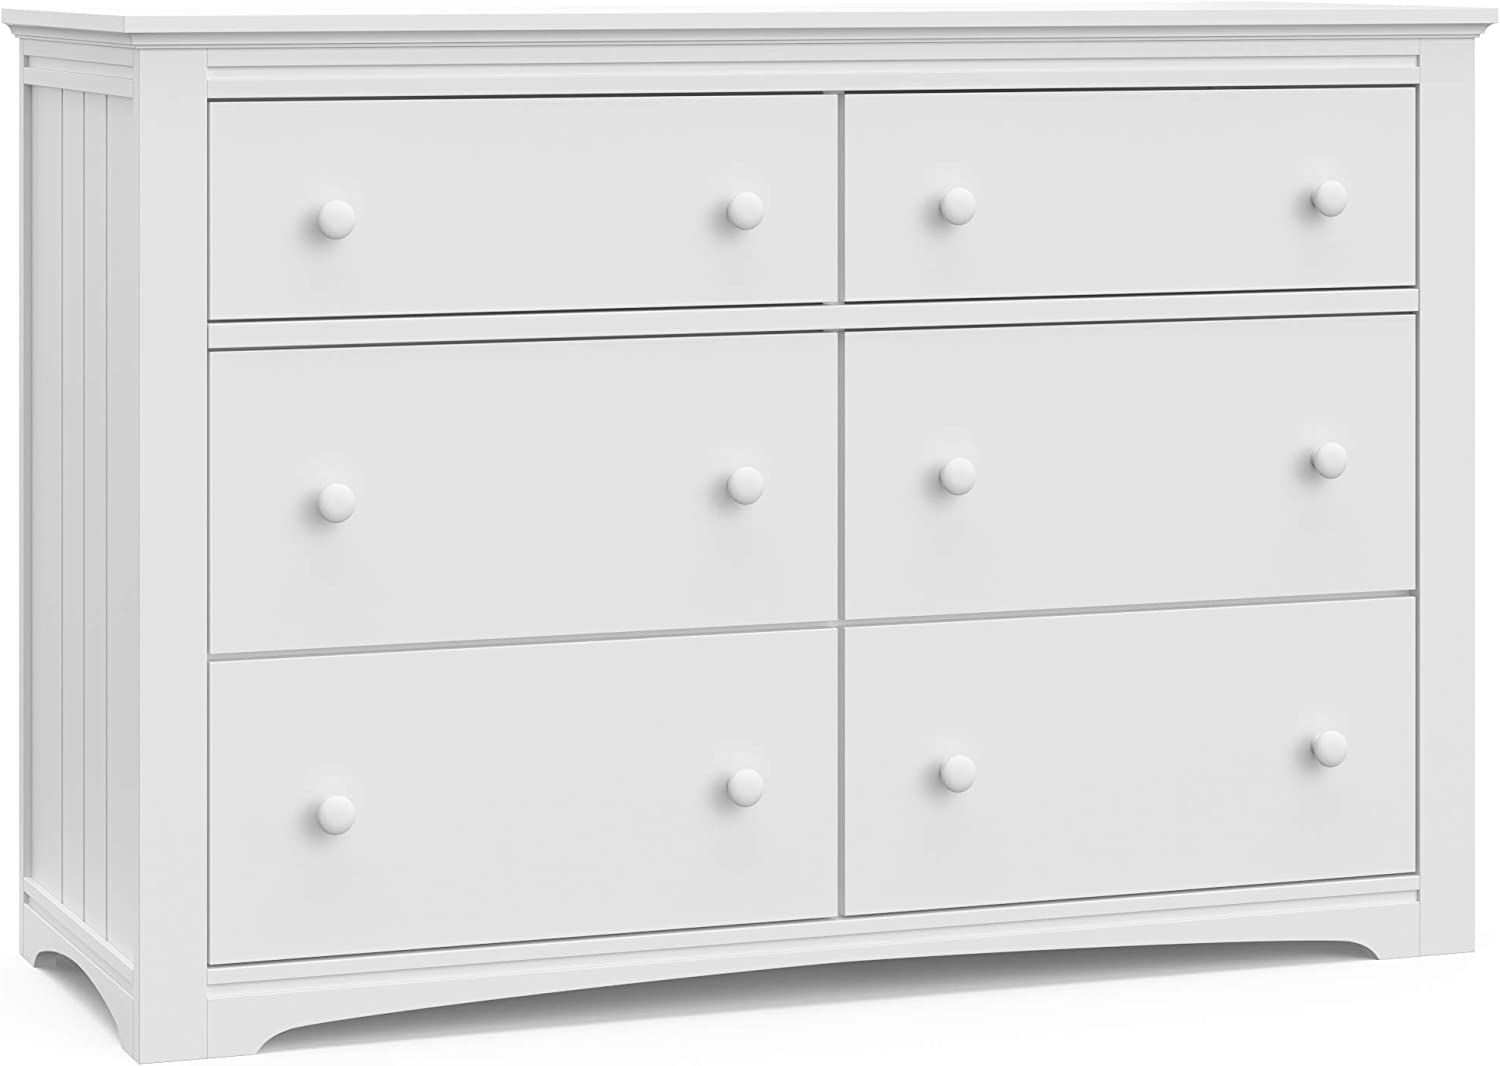 Universal Design Graco Hadley 4 Drawer Dresser Mocha - Slate Gray Coordinates with Any Nursery Easy New Assembly Process Durable Steel Hardware and Euro-Glide Drawers with Safety Stops